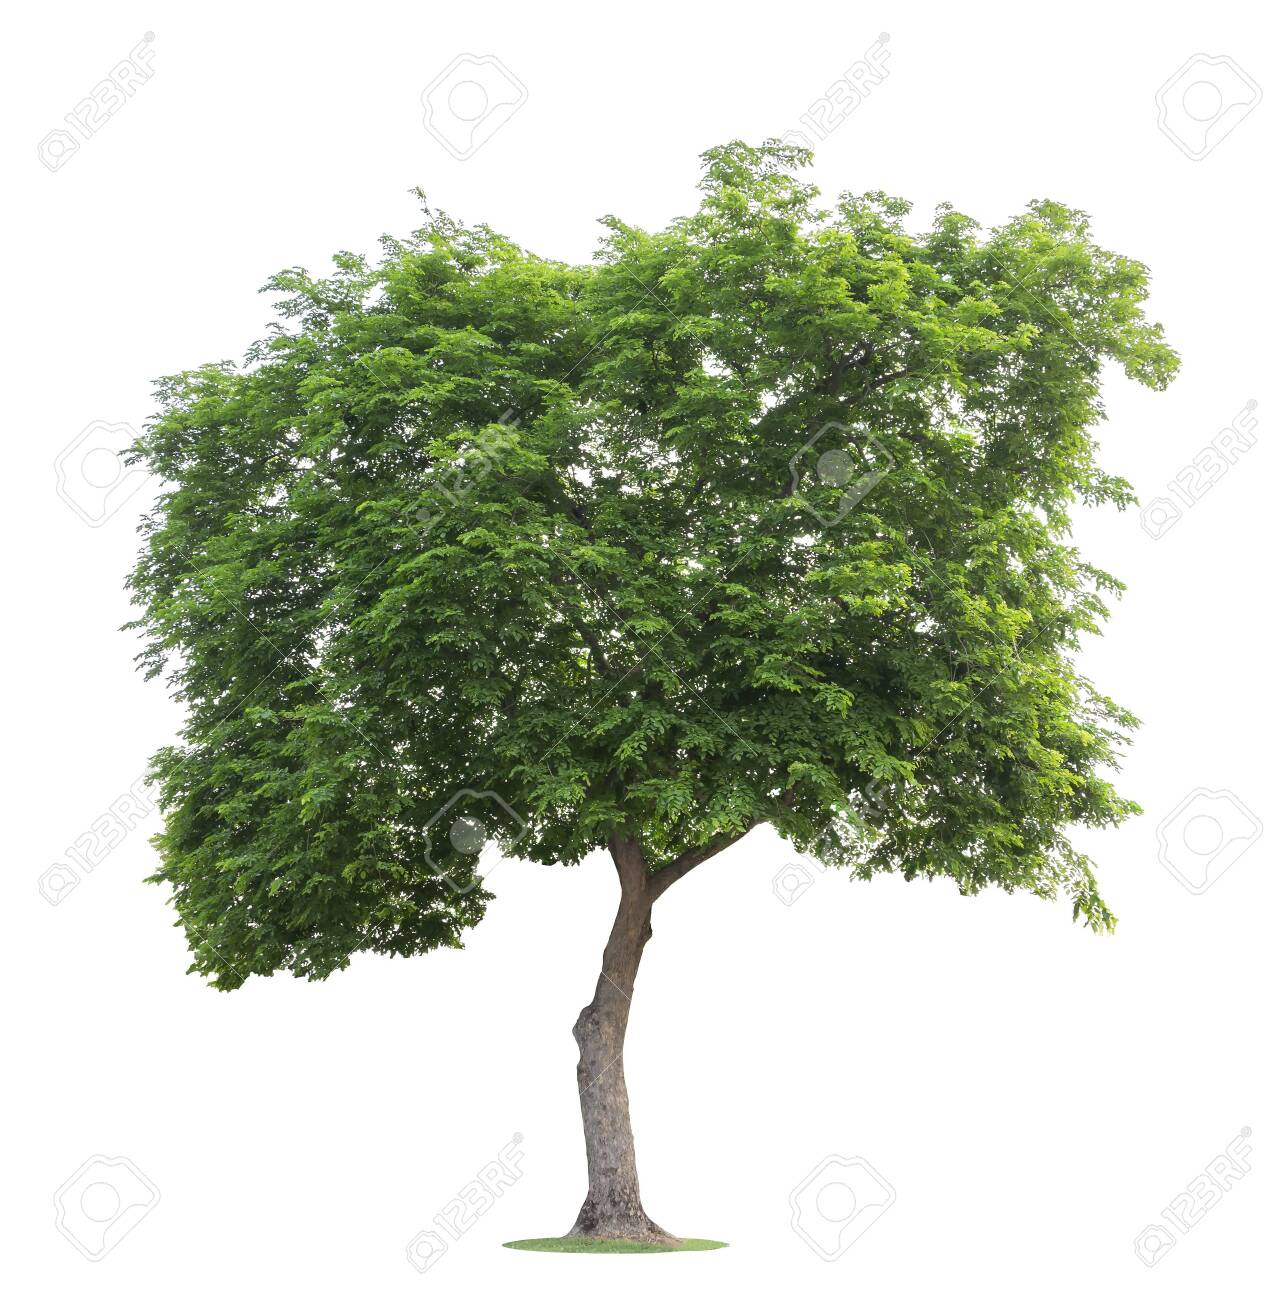 The big and green tree isolated on white background. Beautiful and robust trees are growing in the forest, garden or park. - 124421790